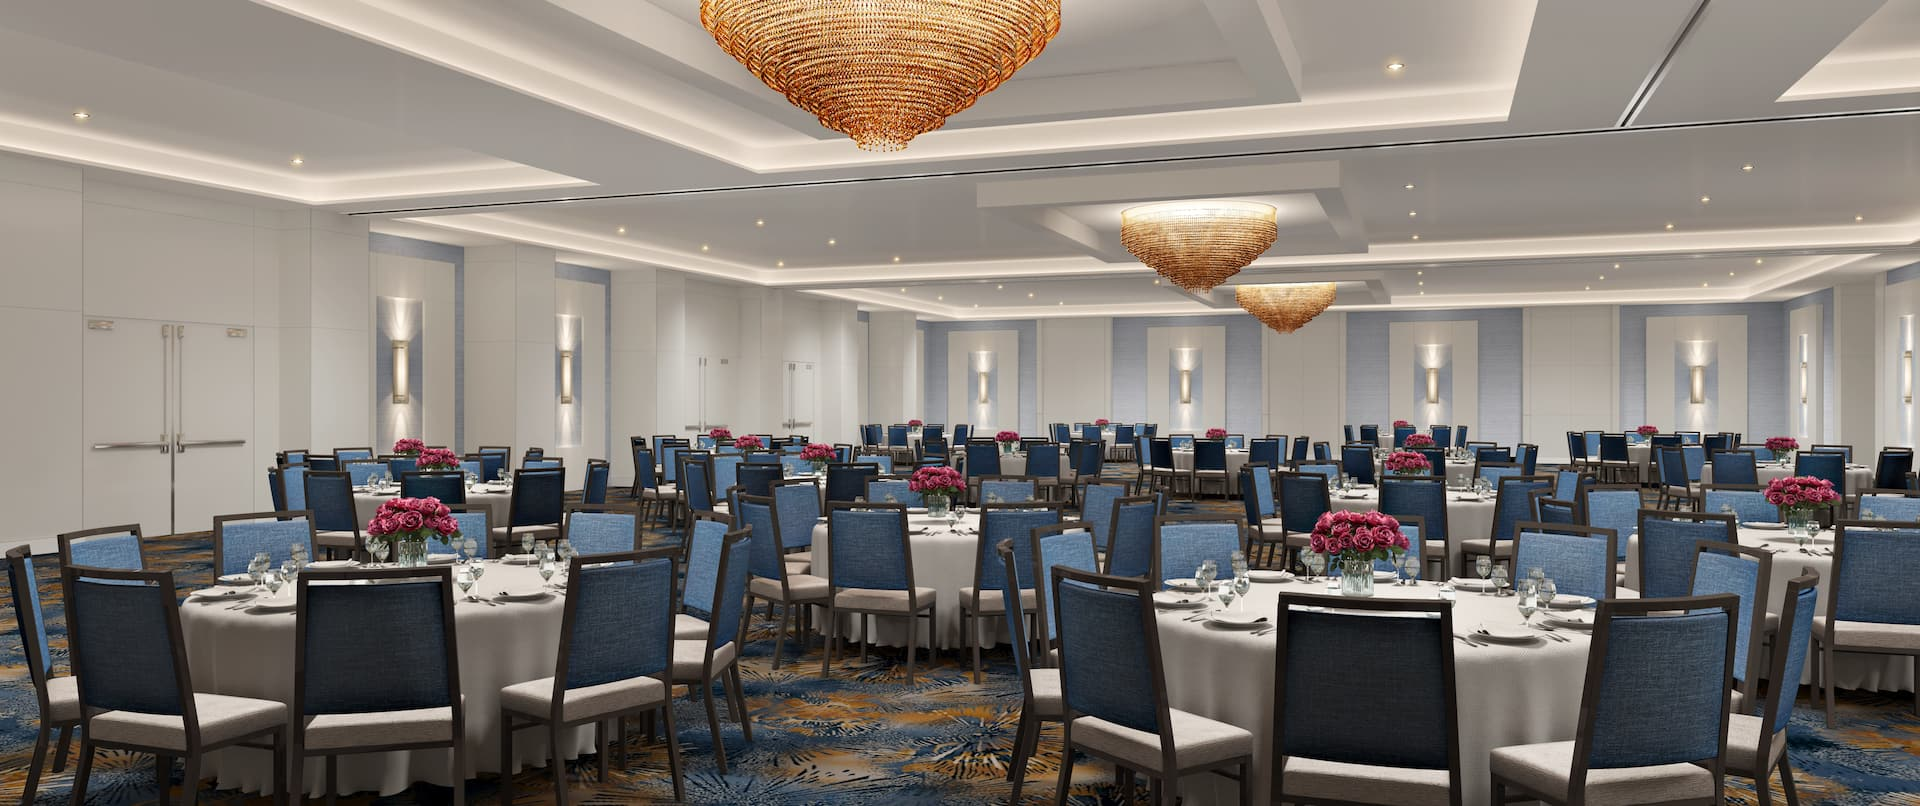 grand ballroom with round tables